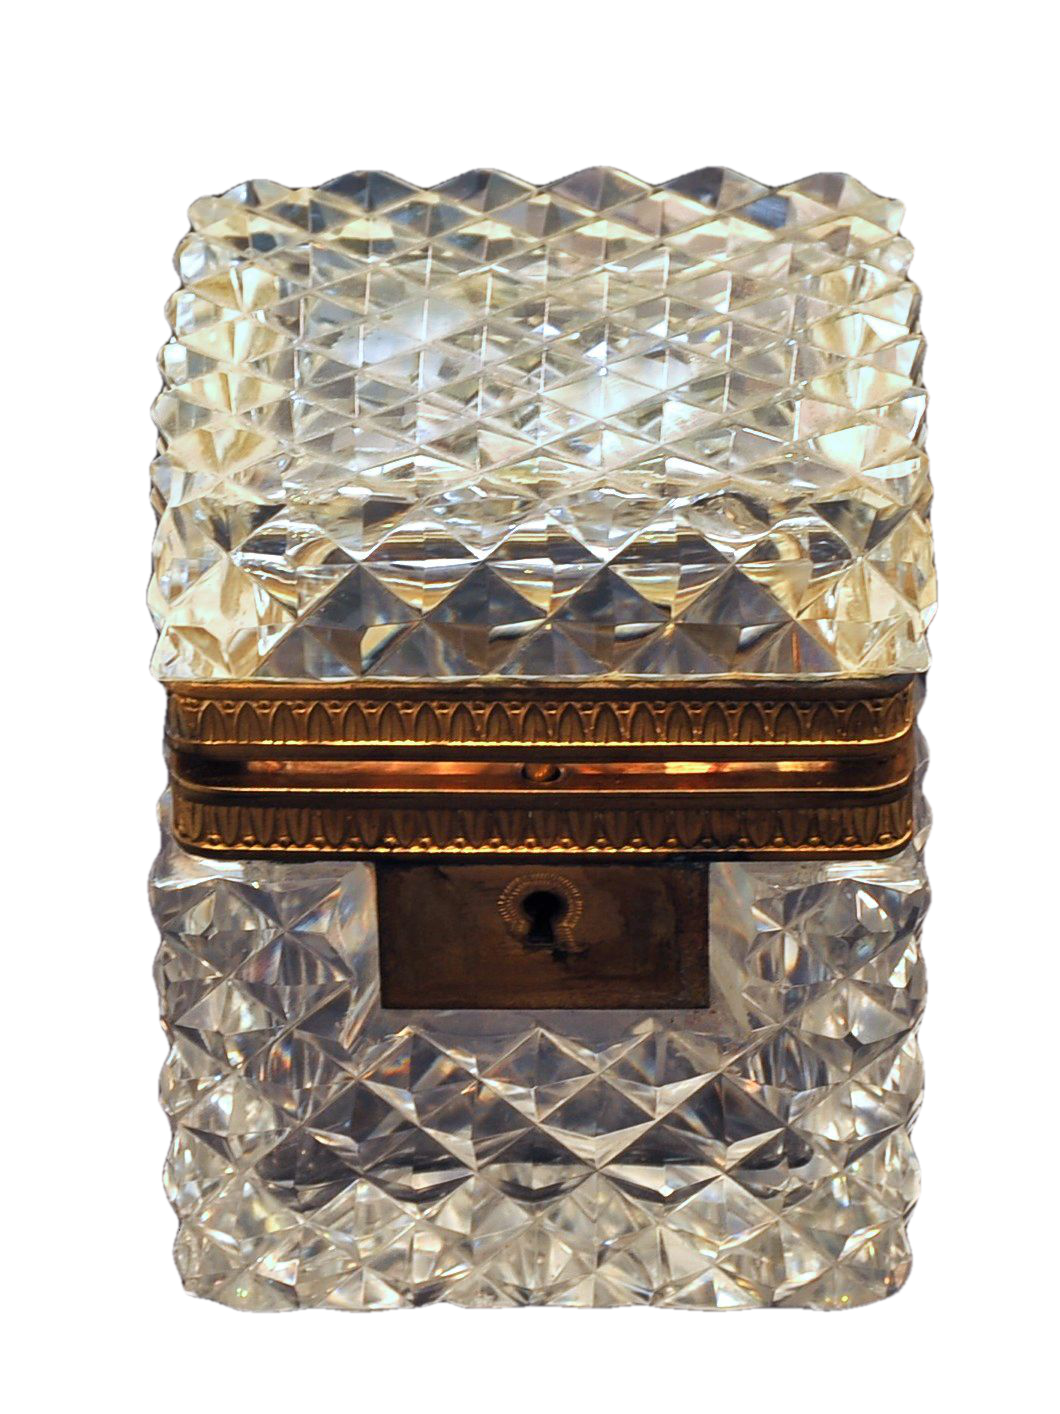 Ormolu Mounted Crystal Box in the Style of Baccarat. French